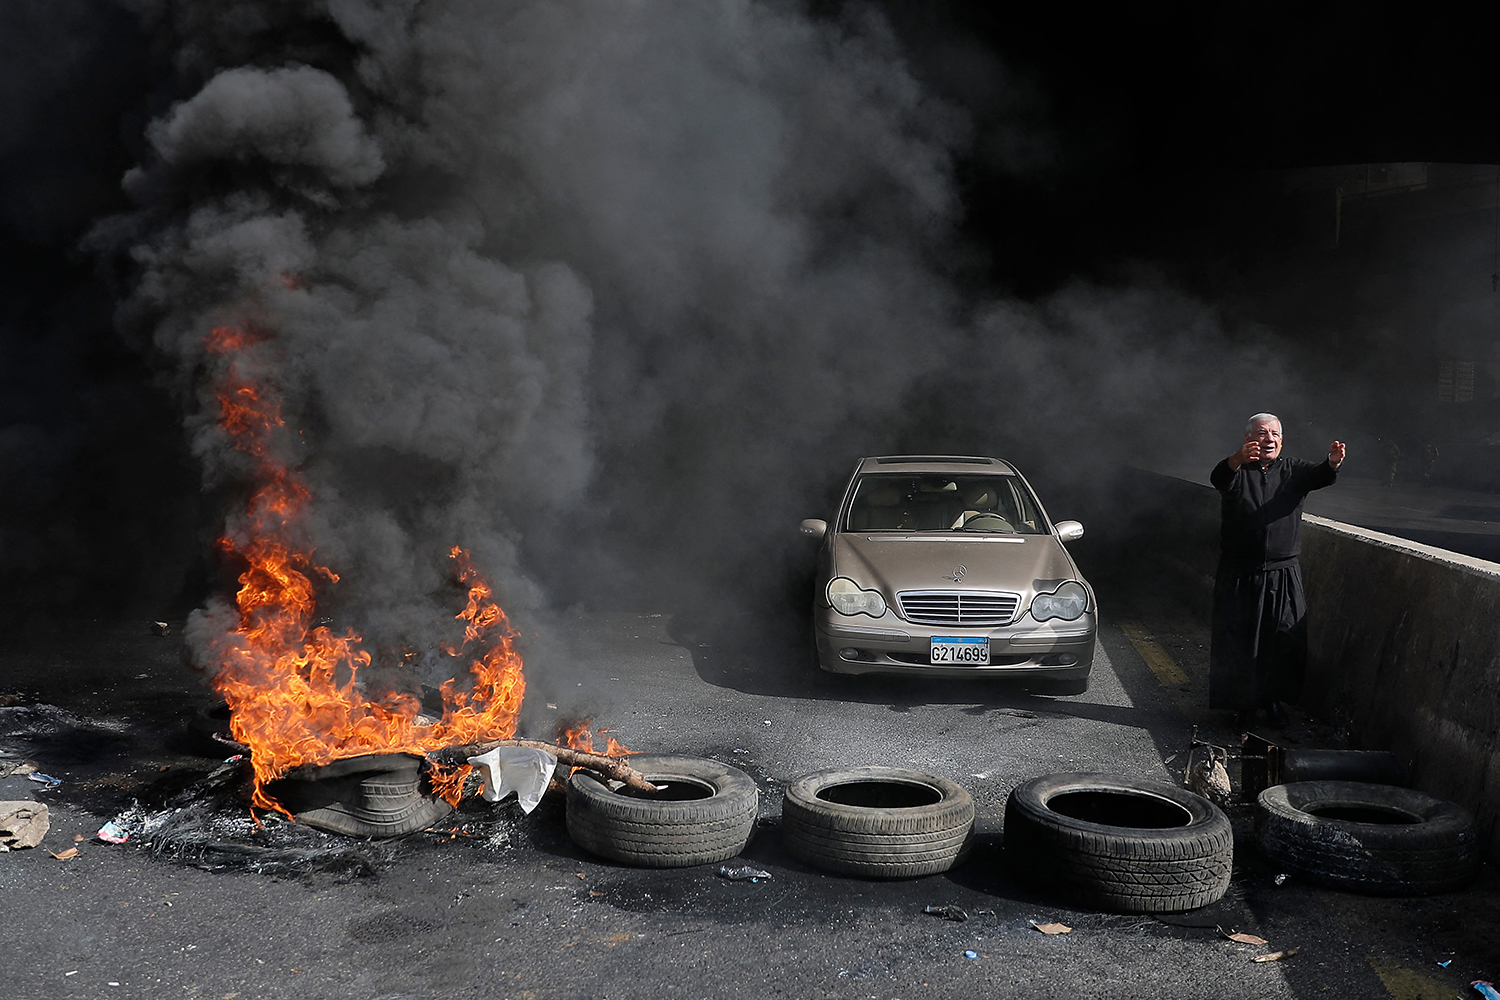 A Maronite Christian priest pleads with anti-government protesters to let his car pass as he stands next to burning tires at a makeshift roadblock in Zouk Mosbeh, Lebanon, on March 8. Protesters were demonstrating against the dire economic and social conditions. JOSEPH EID/AFP via Getty Images